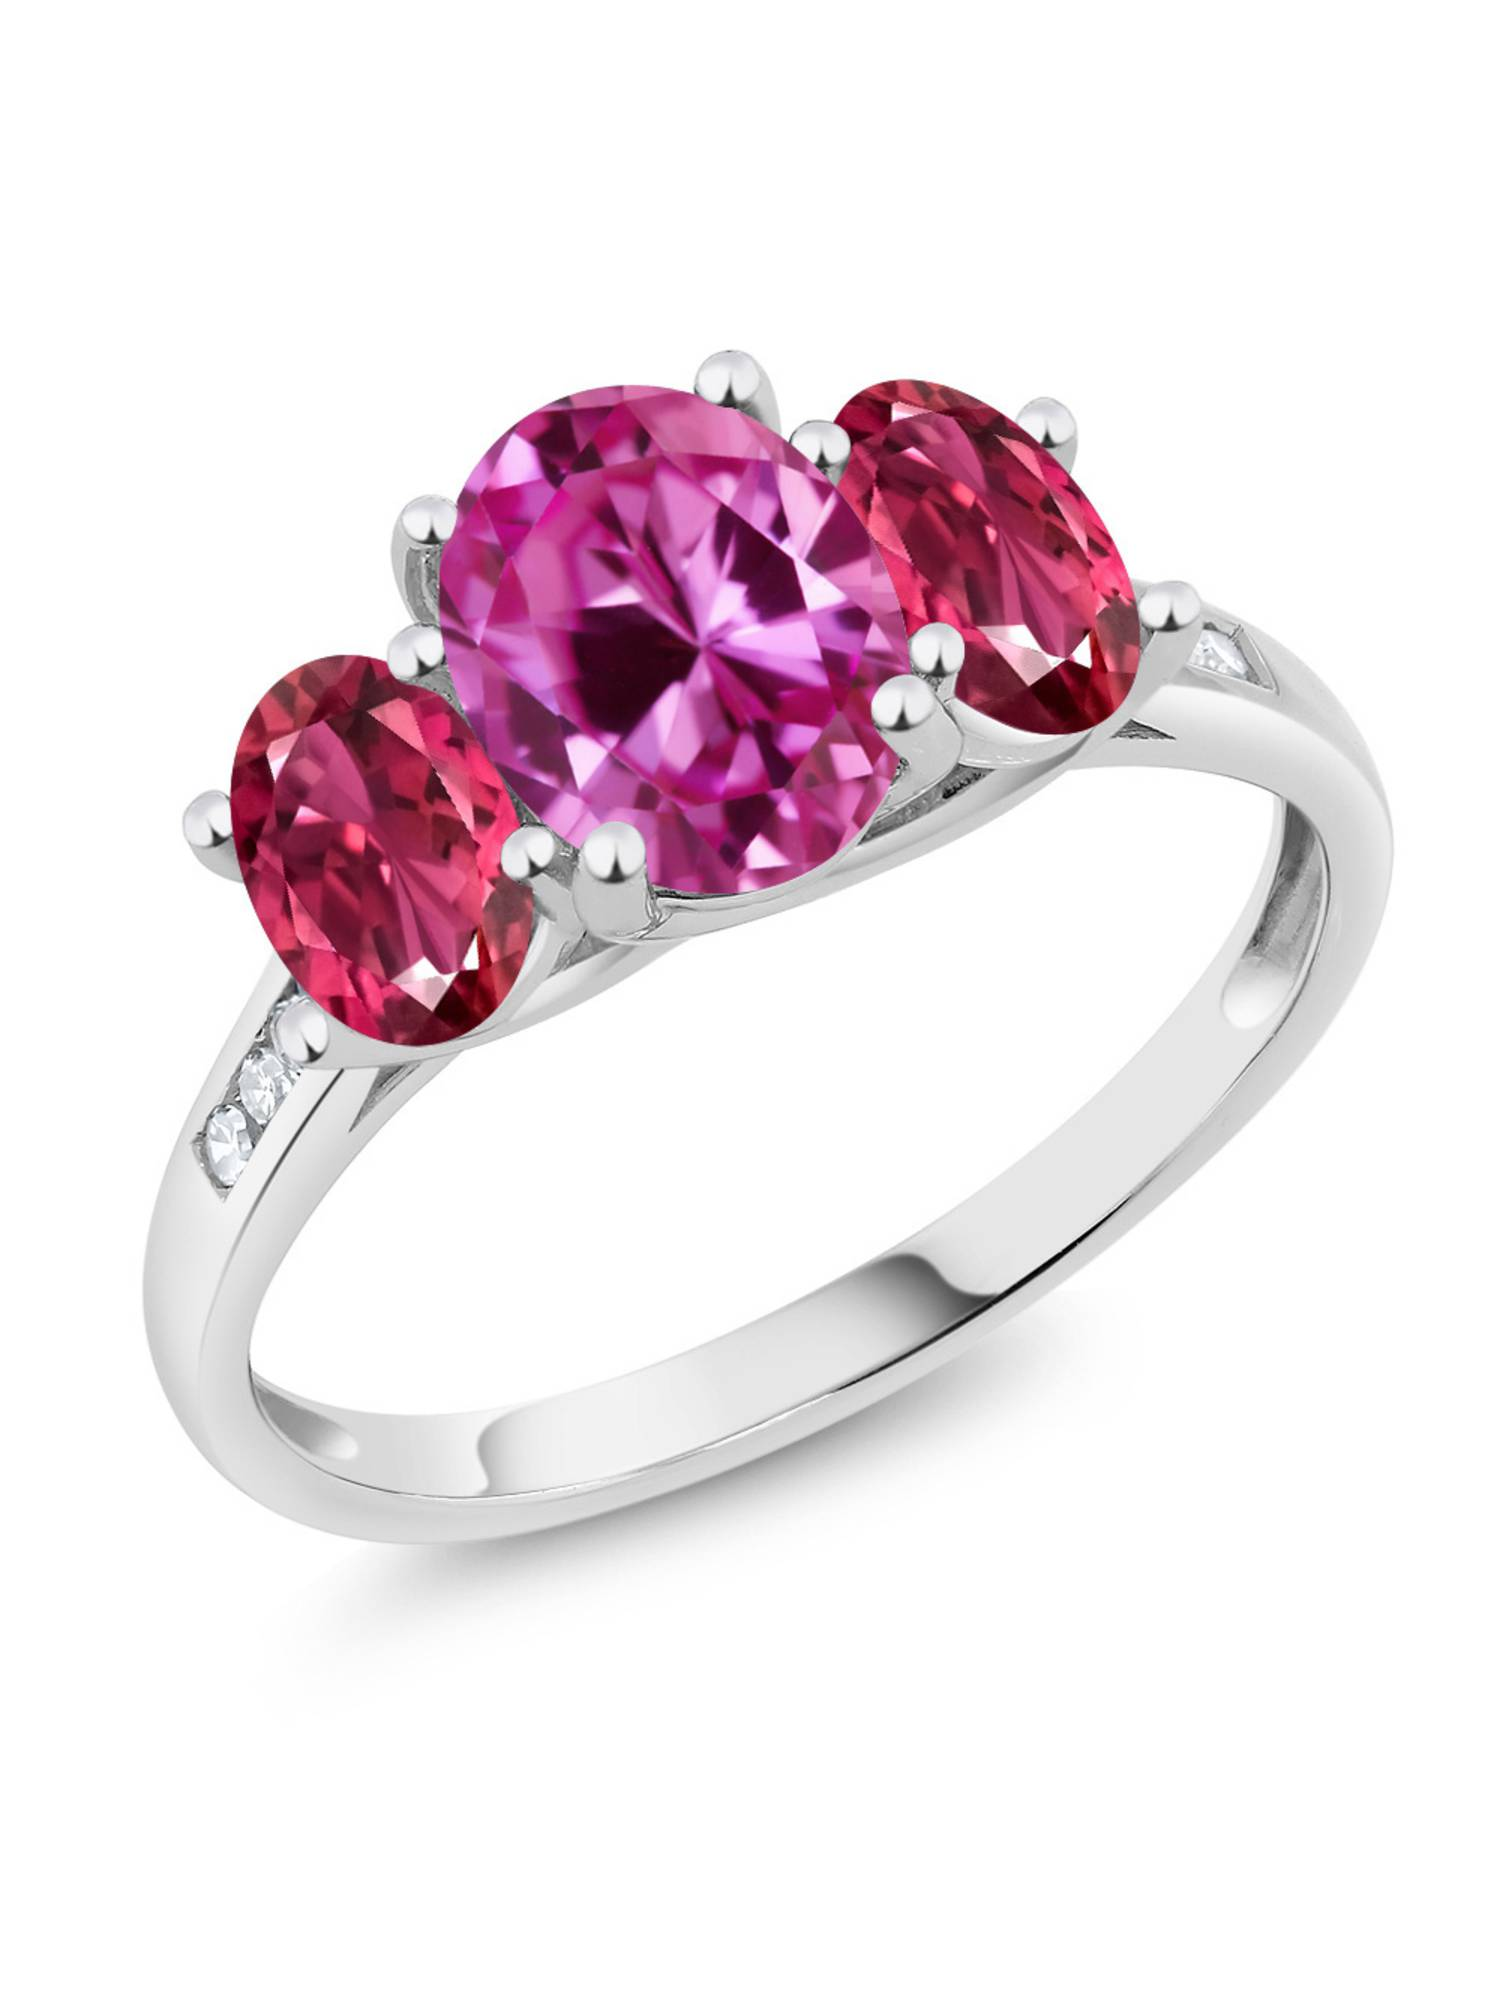 10K White Gold 2.41 Ct Oval Pink Created Sapphire Pink Tourmaline 3-Stone Ring by